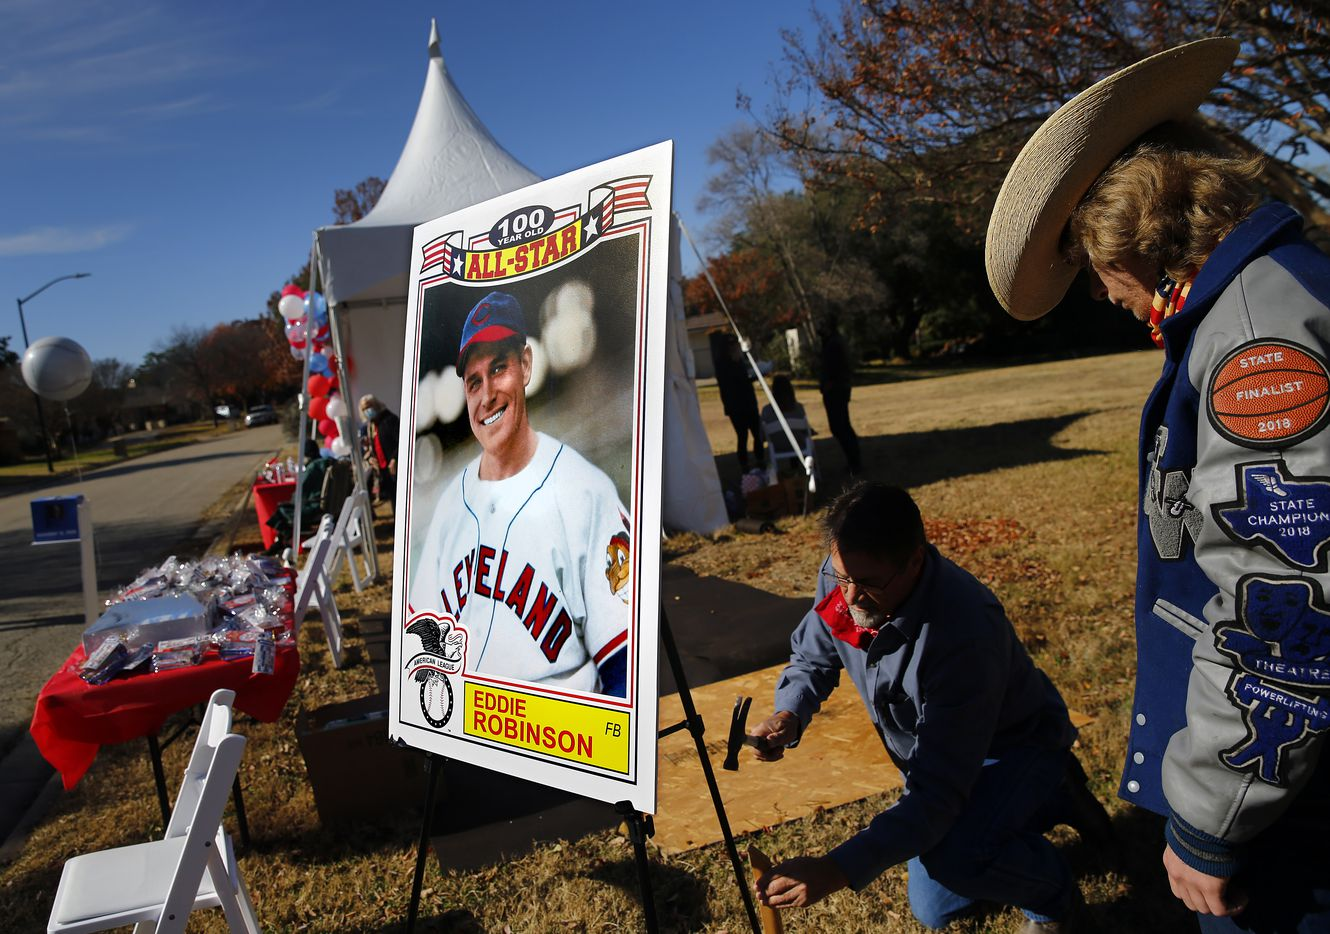 Drew Robinson (center) and his step son Preston Goff anchor a large baseball card of Eddie Robinson, the oldest living former MLB player, who will turn 100 on December 15th. To share his birthday with friends, his family orchestrated a drive-by birthday celebration outside Fort Worth home, Saturday, December 12, 2020. His 65 year career started playing for Cleveland Indians and serving in World War II. Later he went on to play for several other teams before presiding over three winning seasons as Rangers general manager. He is still in great physical health as he waves to passersby, including former teammates, GM Tom Grieve and U.S. congressman and neighbor Marc Veasey. (Tom Fox/The Dallas Morning News)